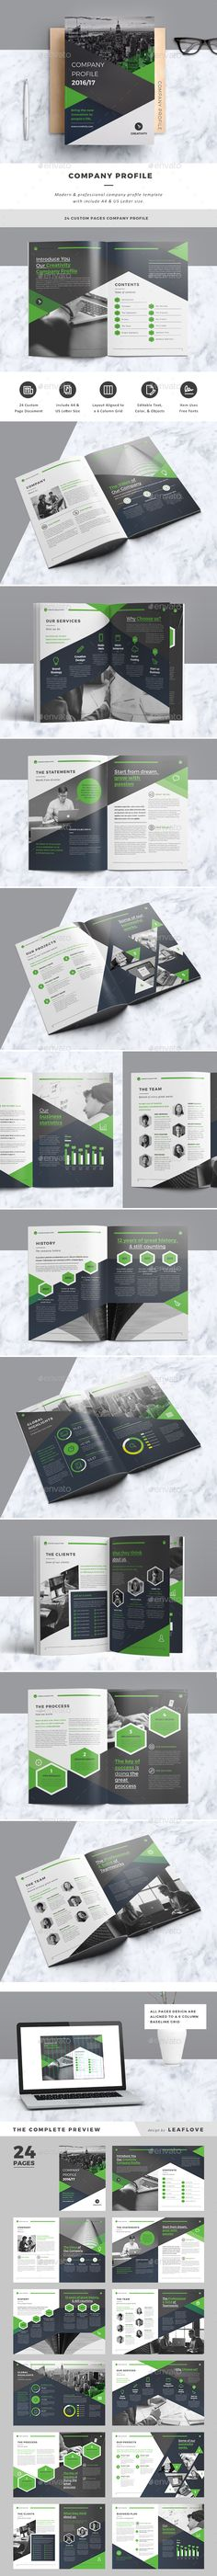 Annual Report 24 Pages Template, Brochures and Annual reports - company information template